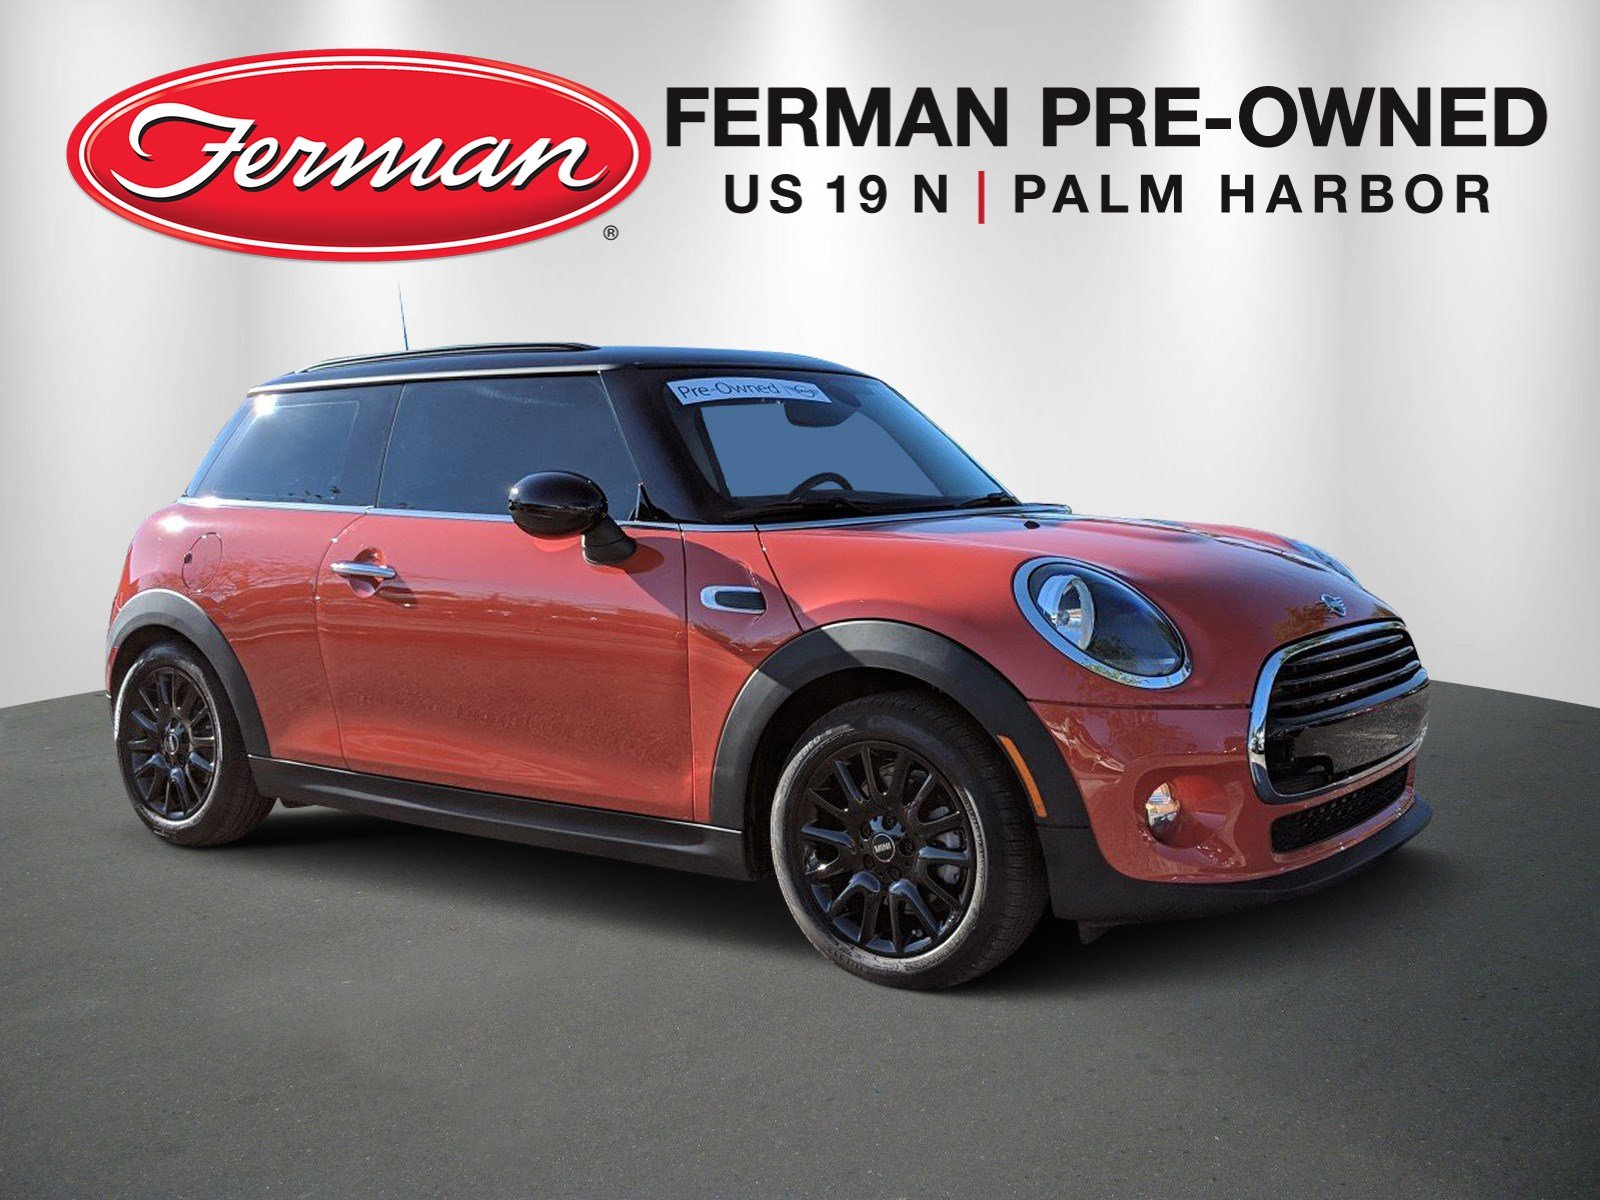 Used Mini Cars for Sale Near Me Luxury Mini Cooper for Sale In Clearwater Fl Autotrader